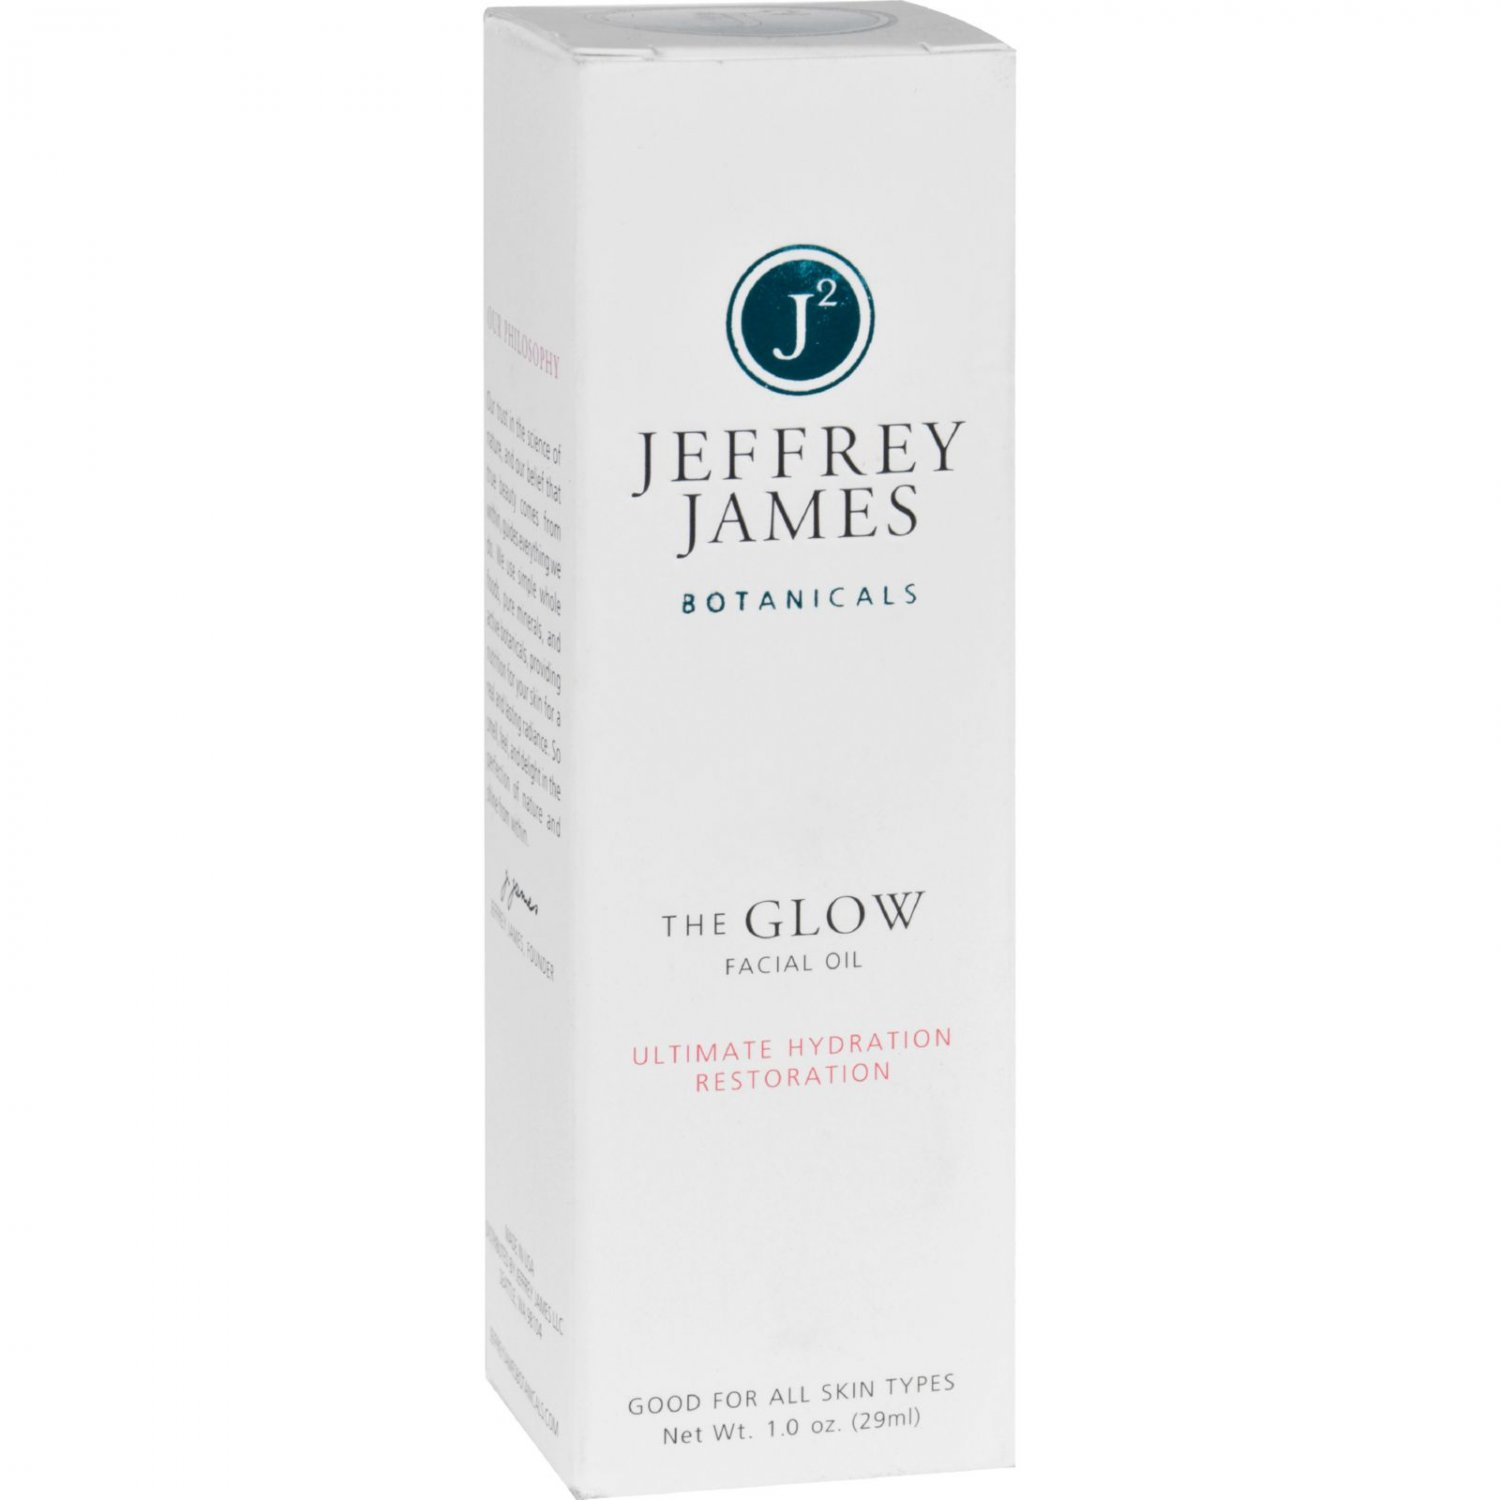 Jeffrey James Botanicals Facial Serum - The Glow - Ultimate Hydration Restoration - 1 oz